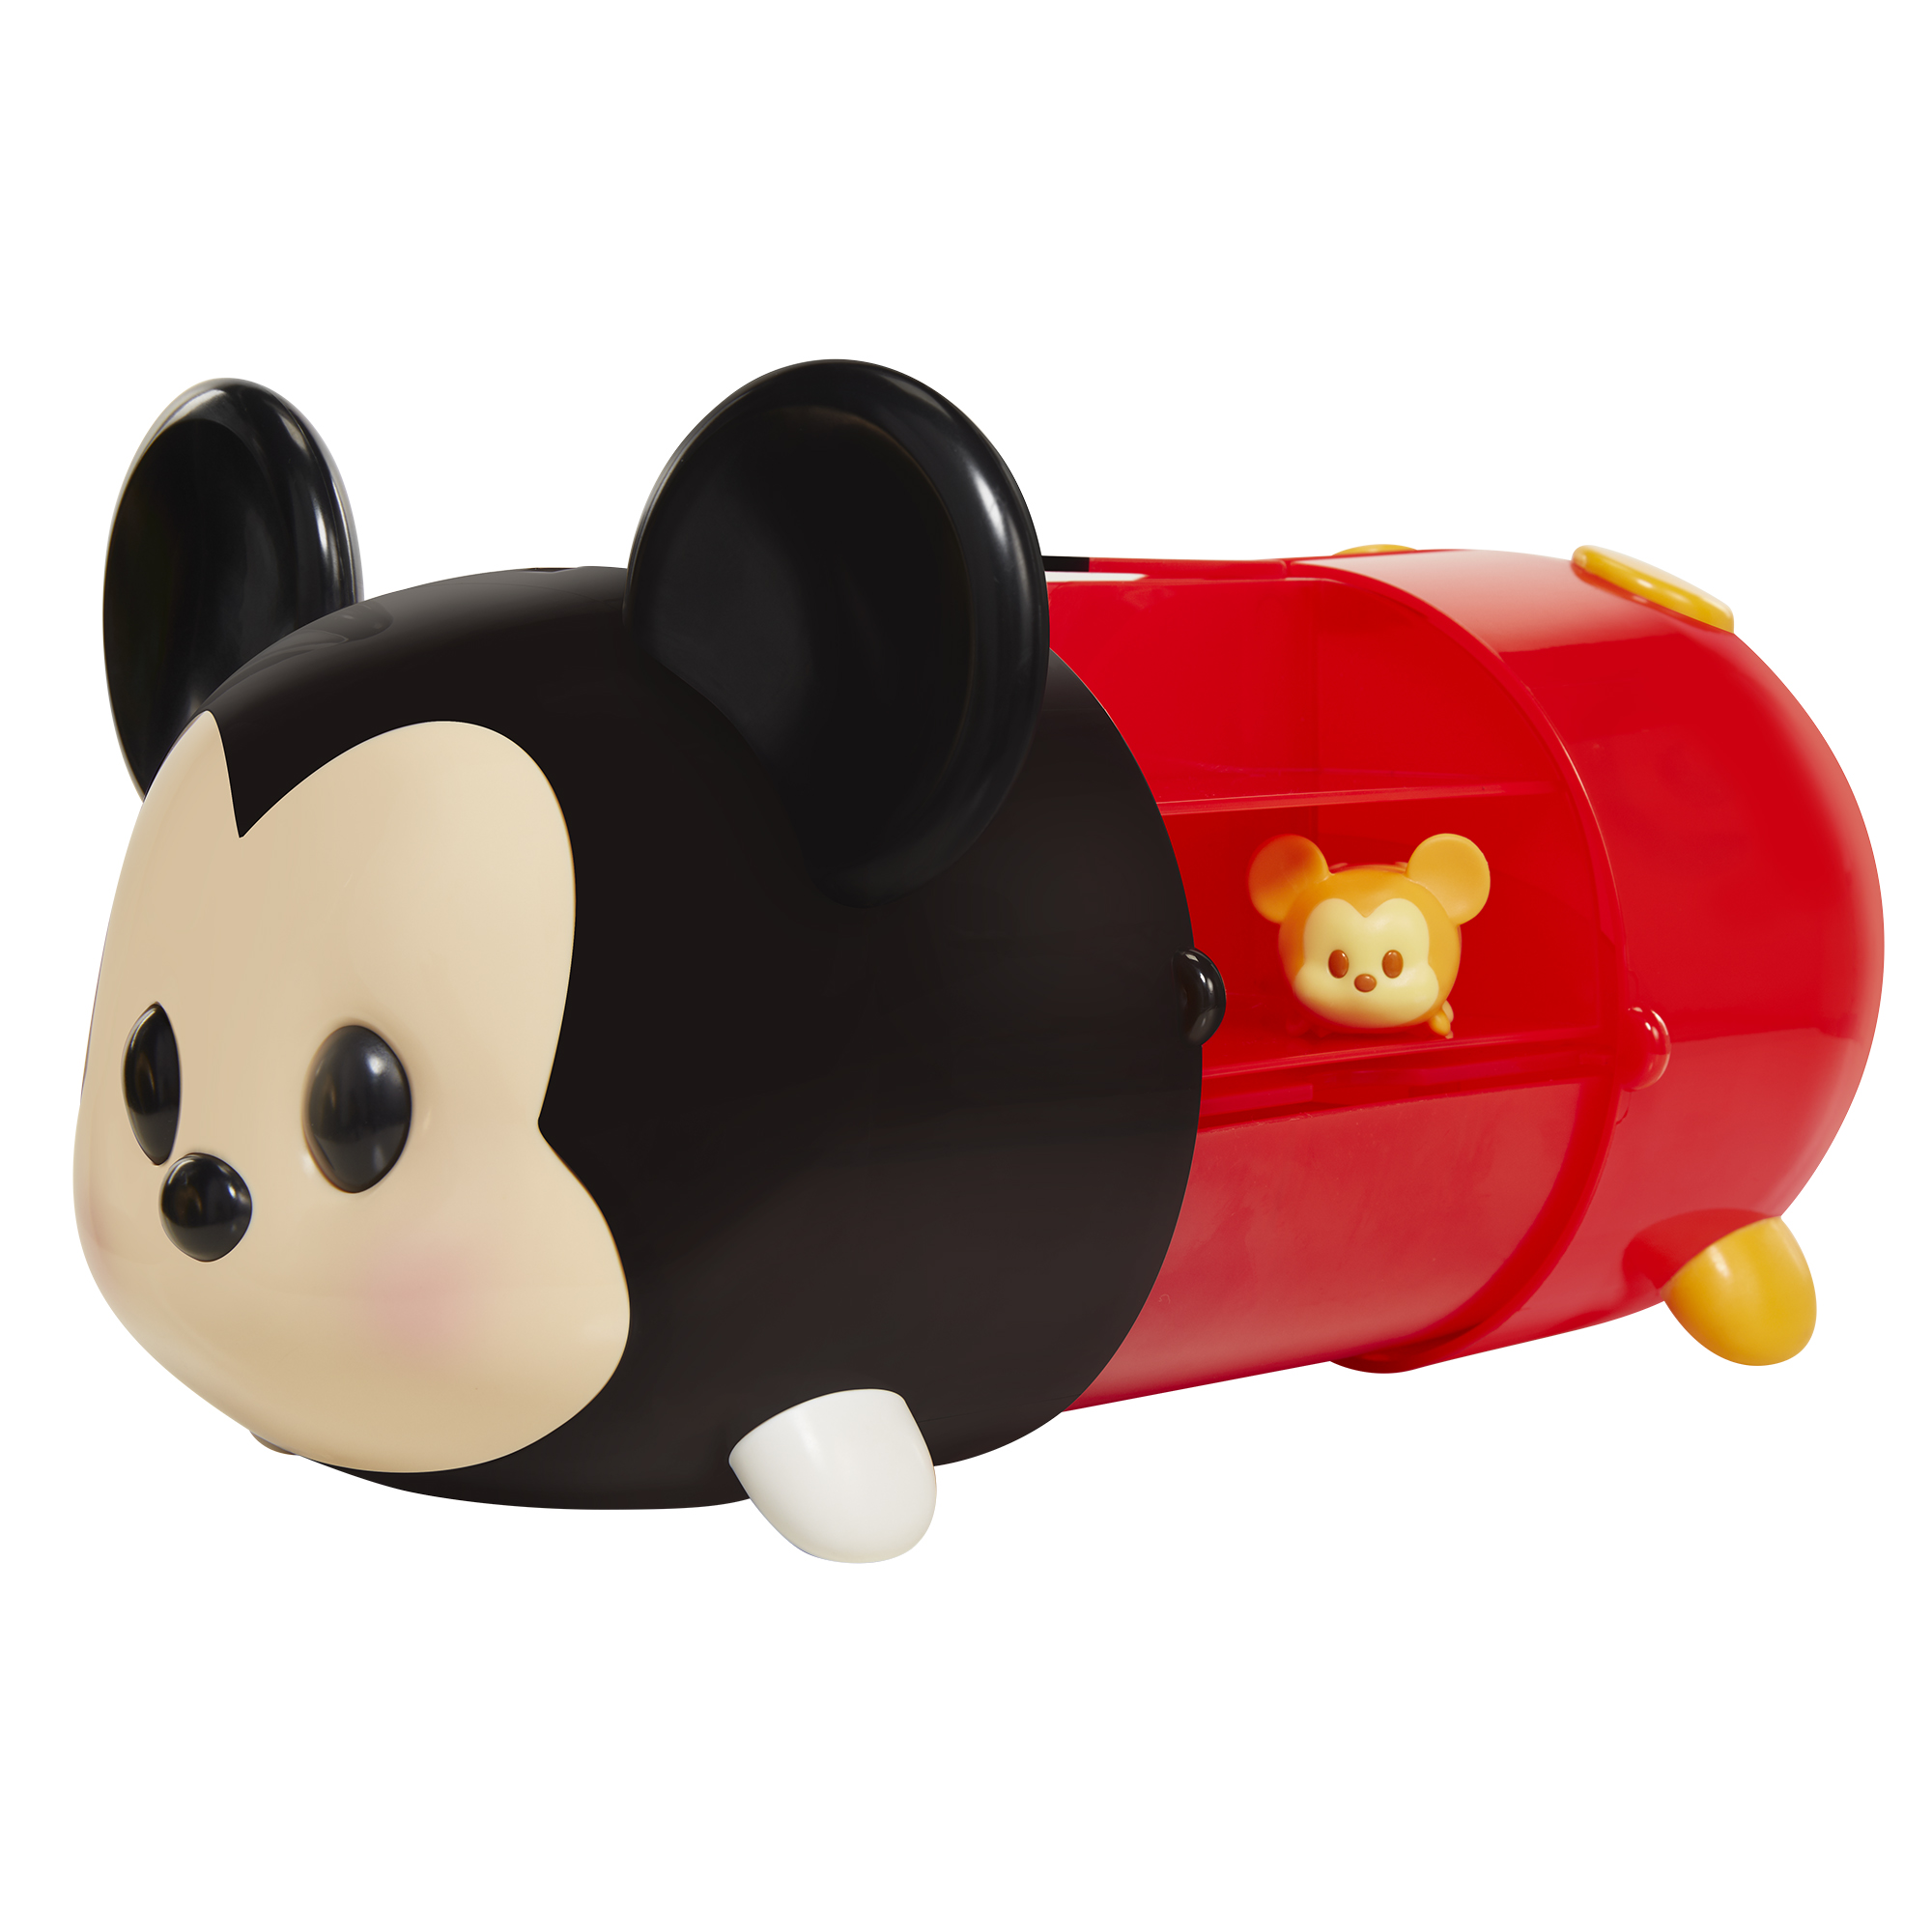 Jakks Pacific New Tsum Tsum Mickey Case with 1 Large Crystal Figure